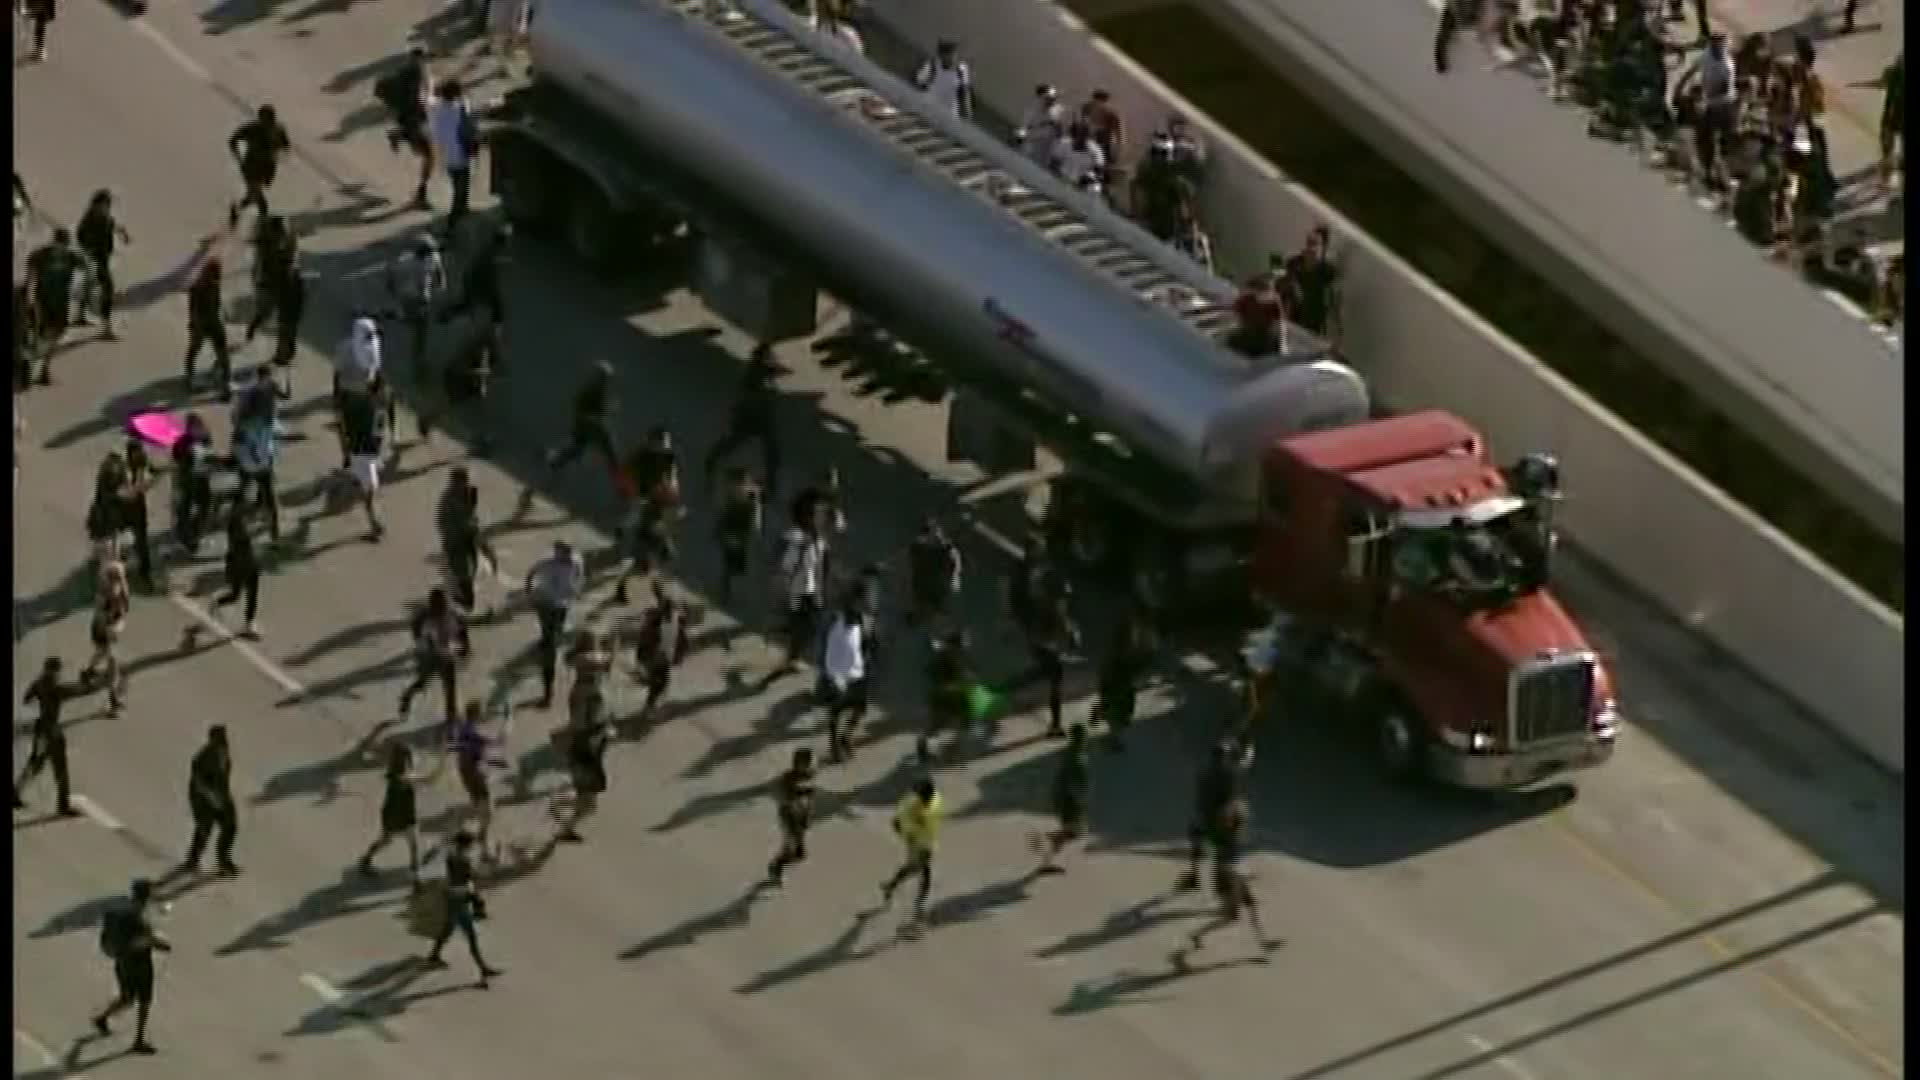 Minneapolis protesters converge on a truck driving on the freeway on May 31, 2020.